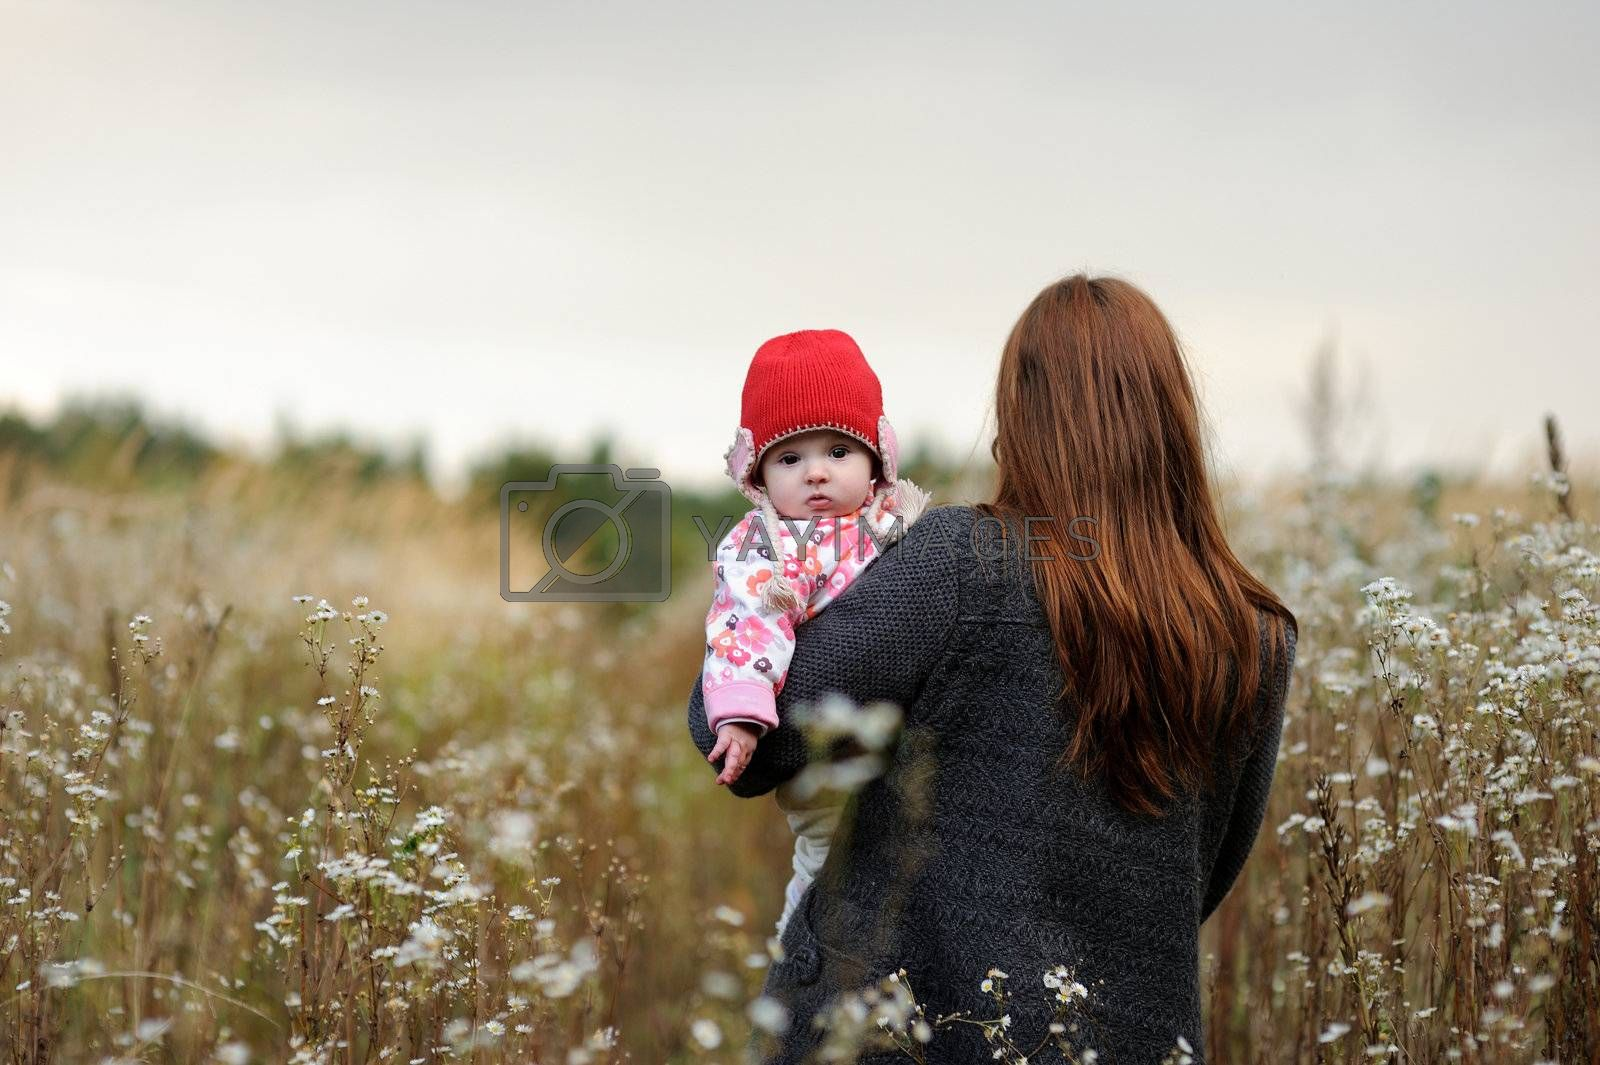 Young mother walking away holding her baby girl